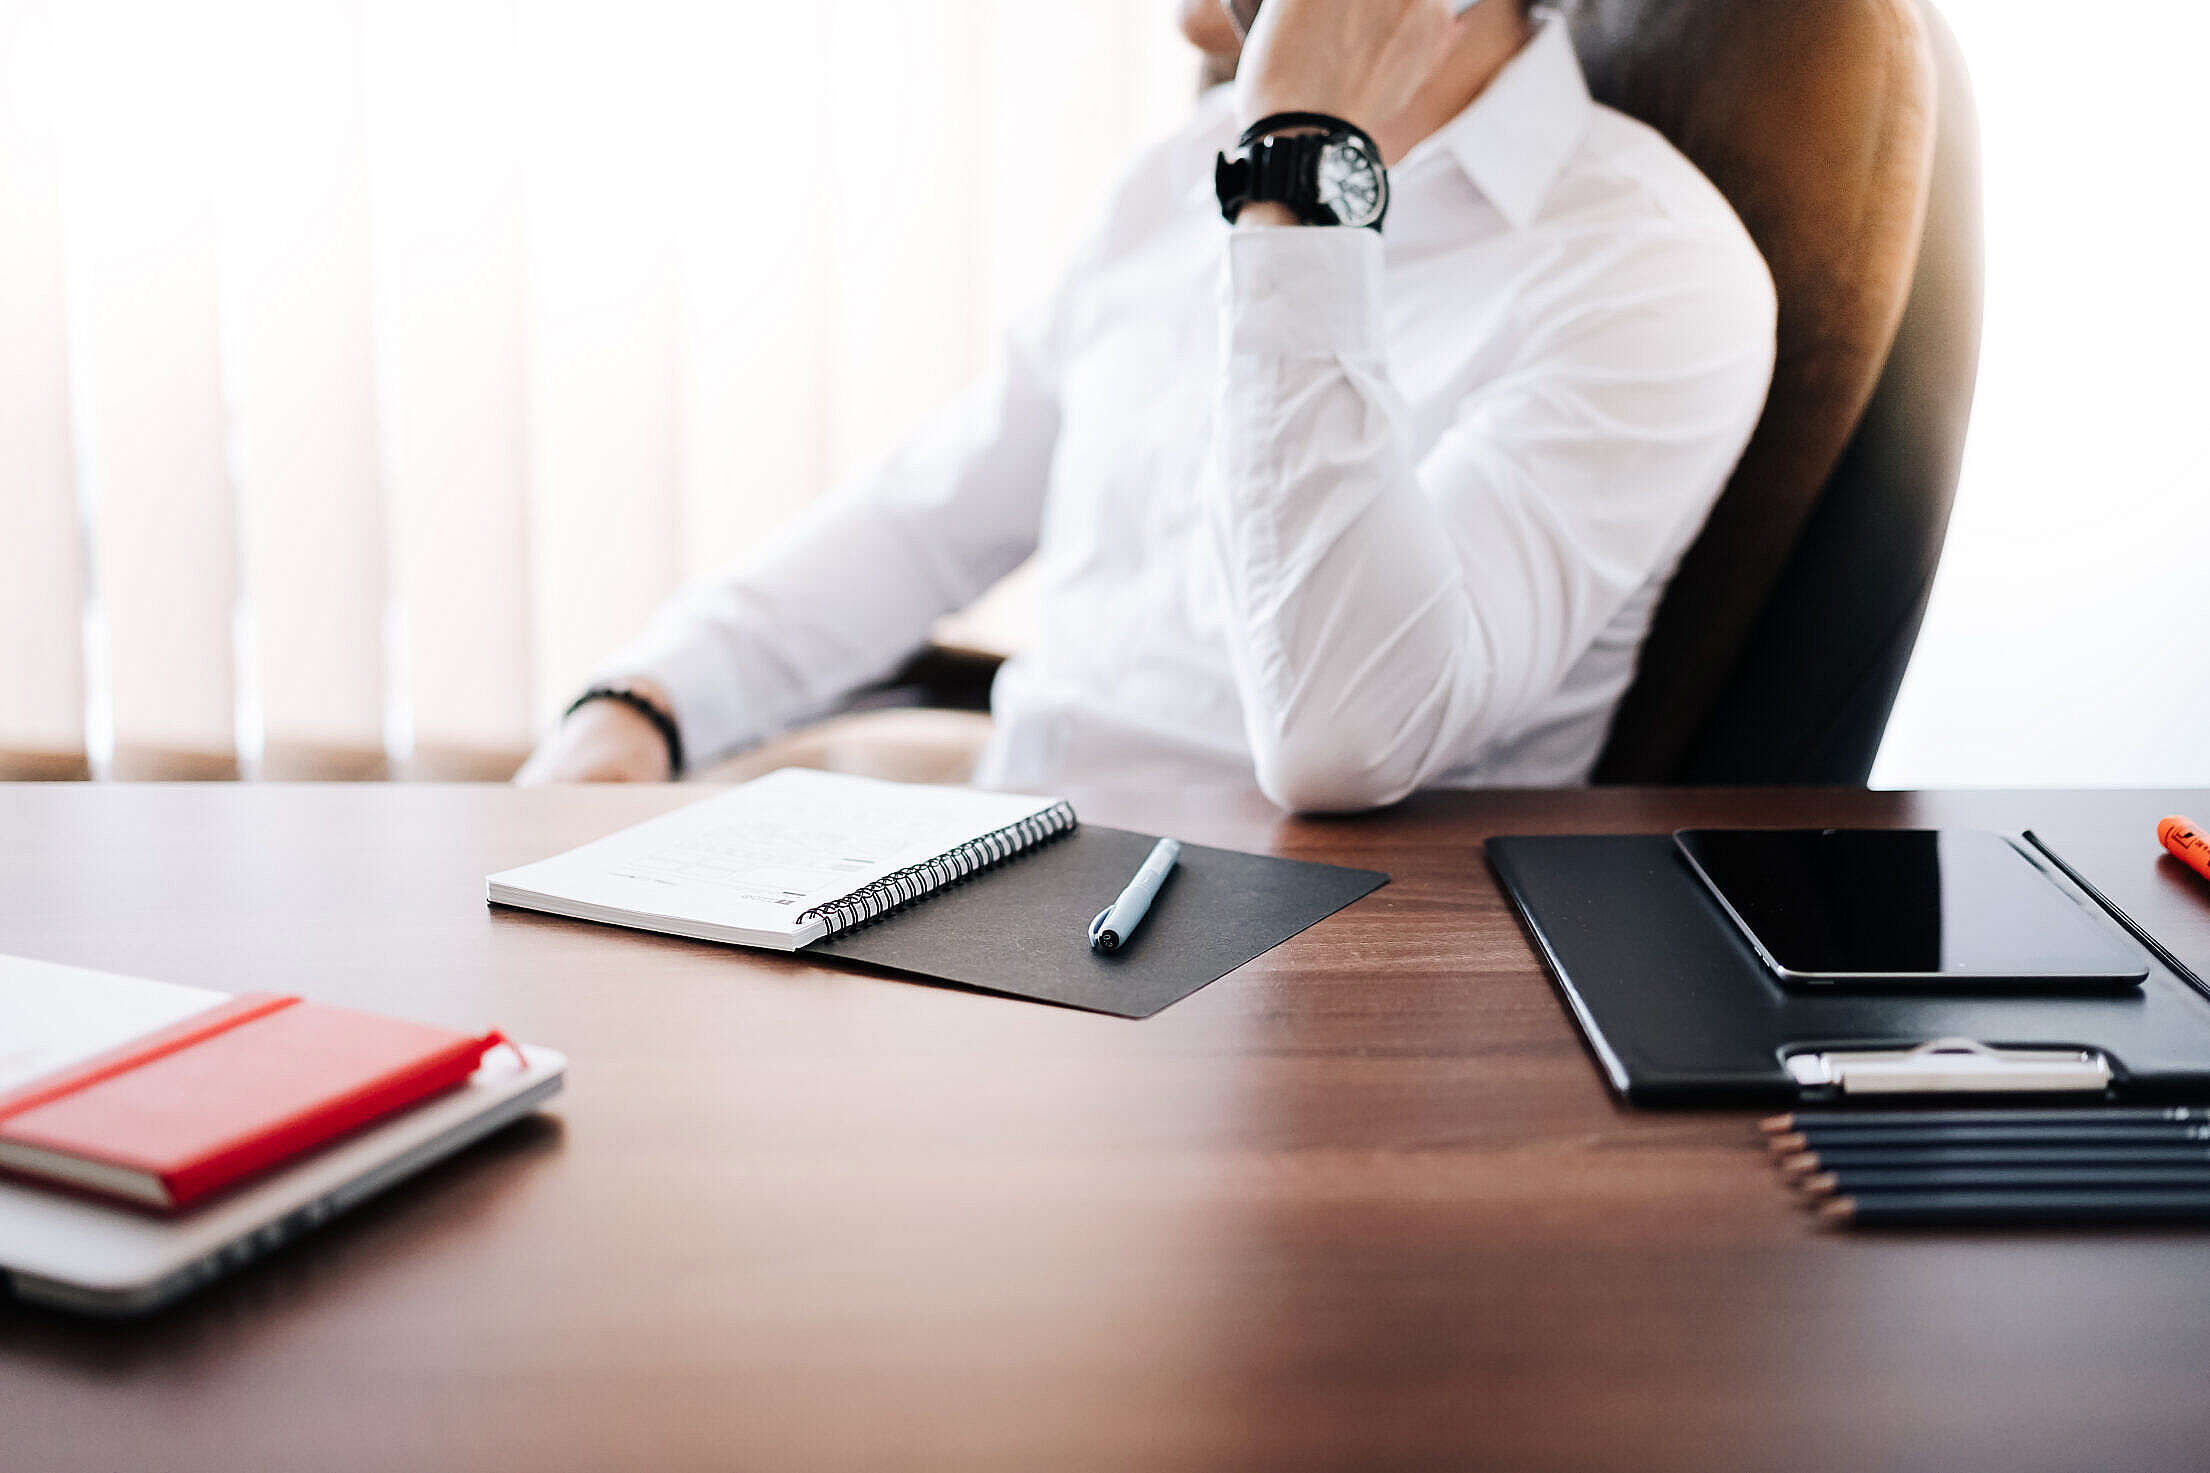 businessman ceo making a phone call in office free photo 2210x1473 1 4